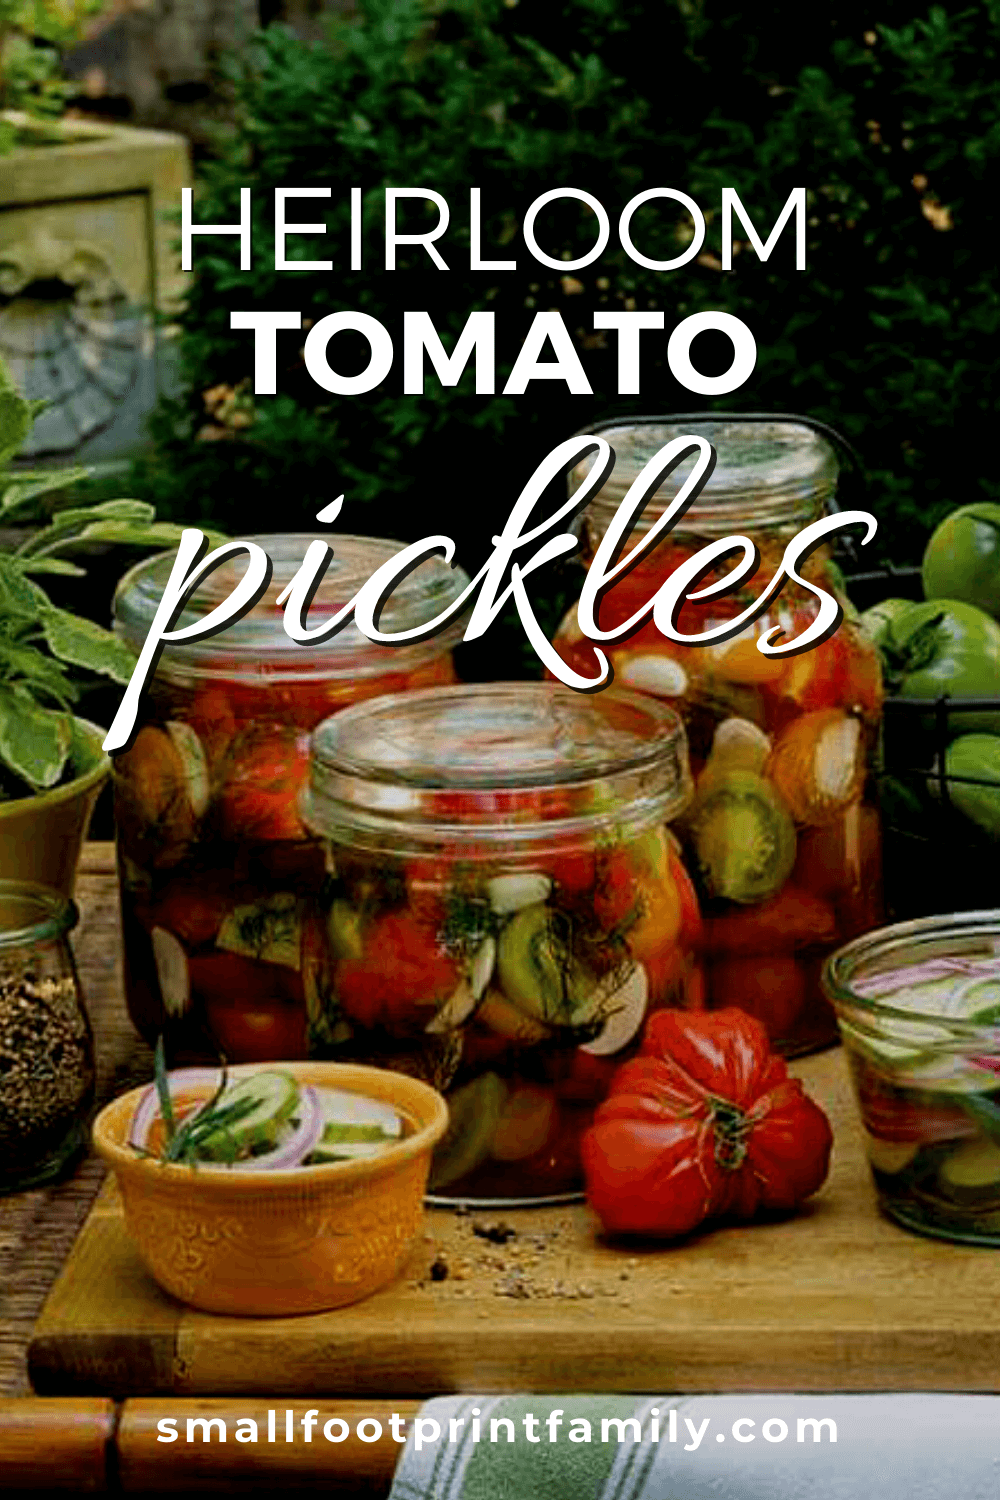 With fresh garlic and herbs, these pickles are a tasty way to preserve and enjoy a bounty of heirloom tomatoes.#fermentation #lactofermentation #pickles #vegan #recipe #paleo #salad #garden